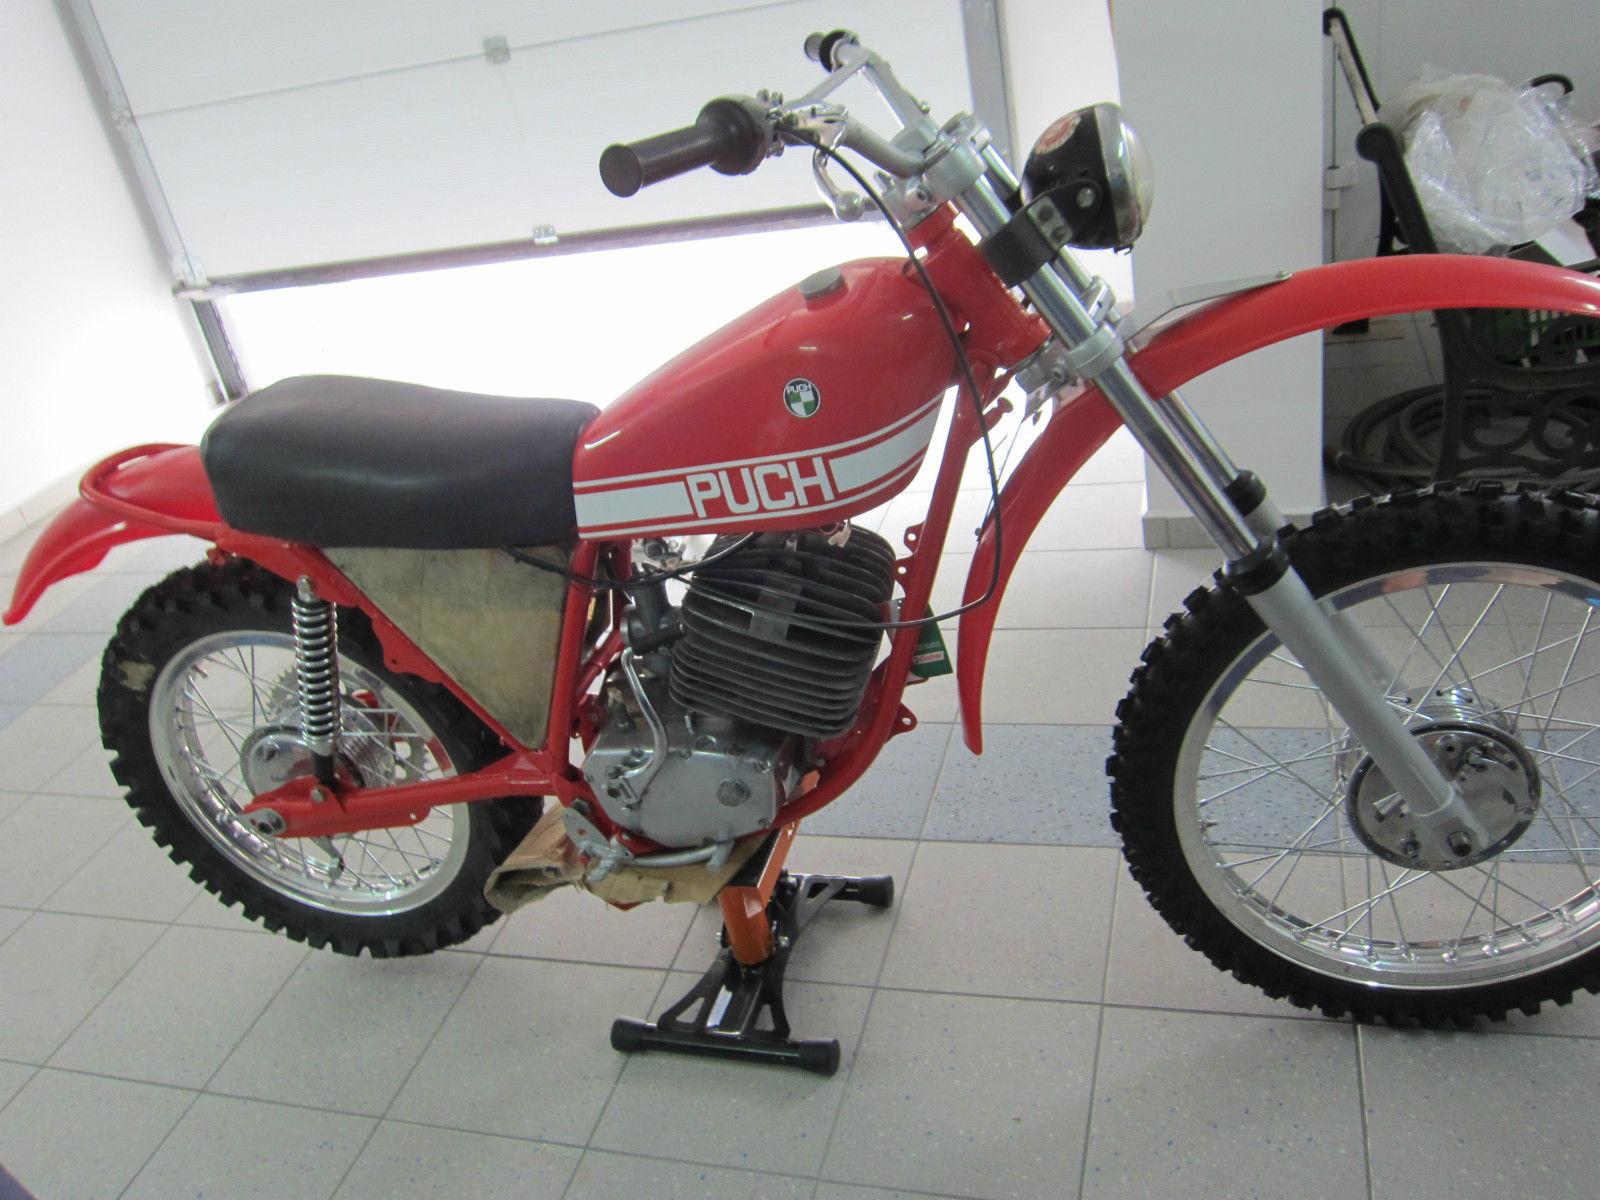 Puch 125 Enduro (6-speed) 1972 images #169704